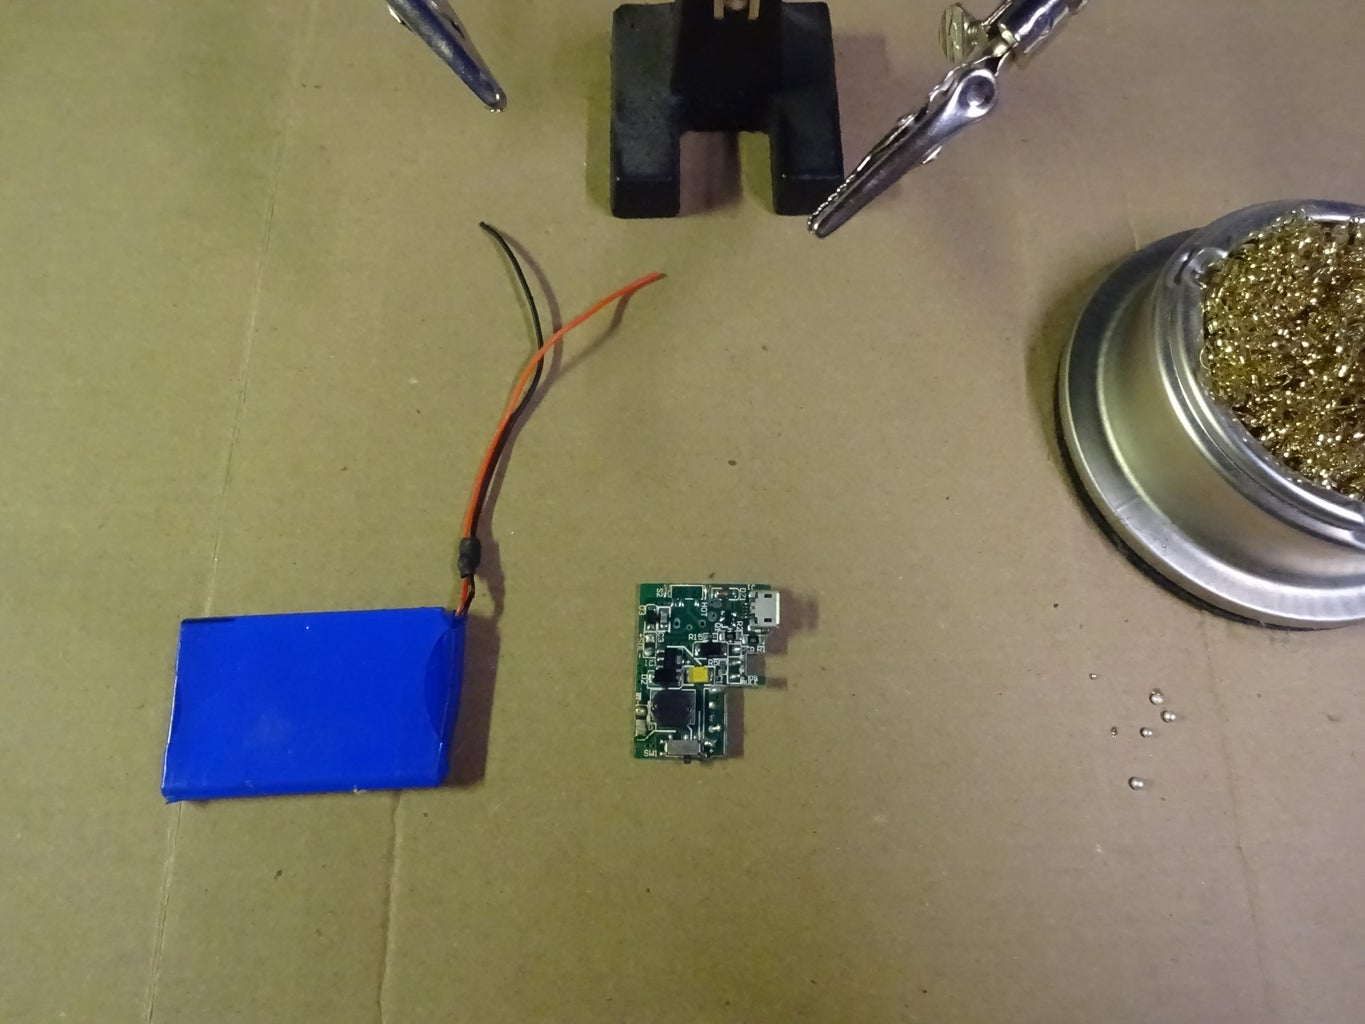 Disassemble the Power Bank